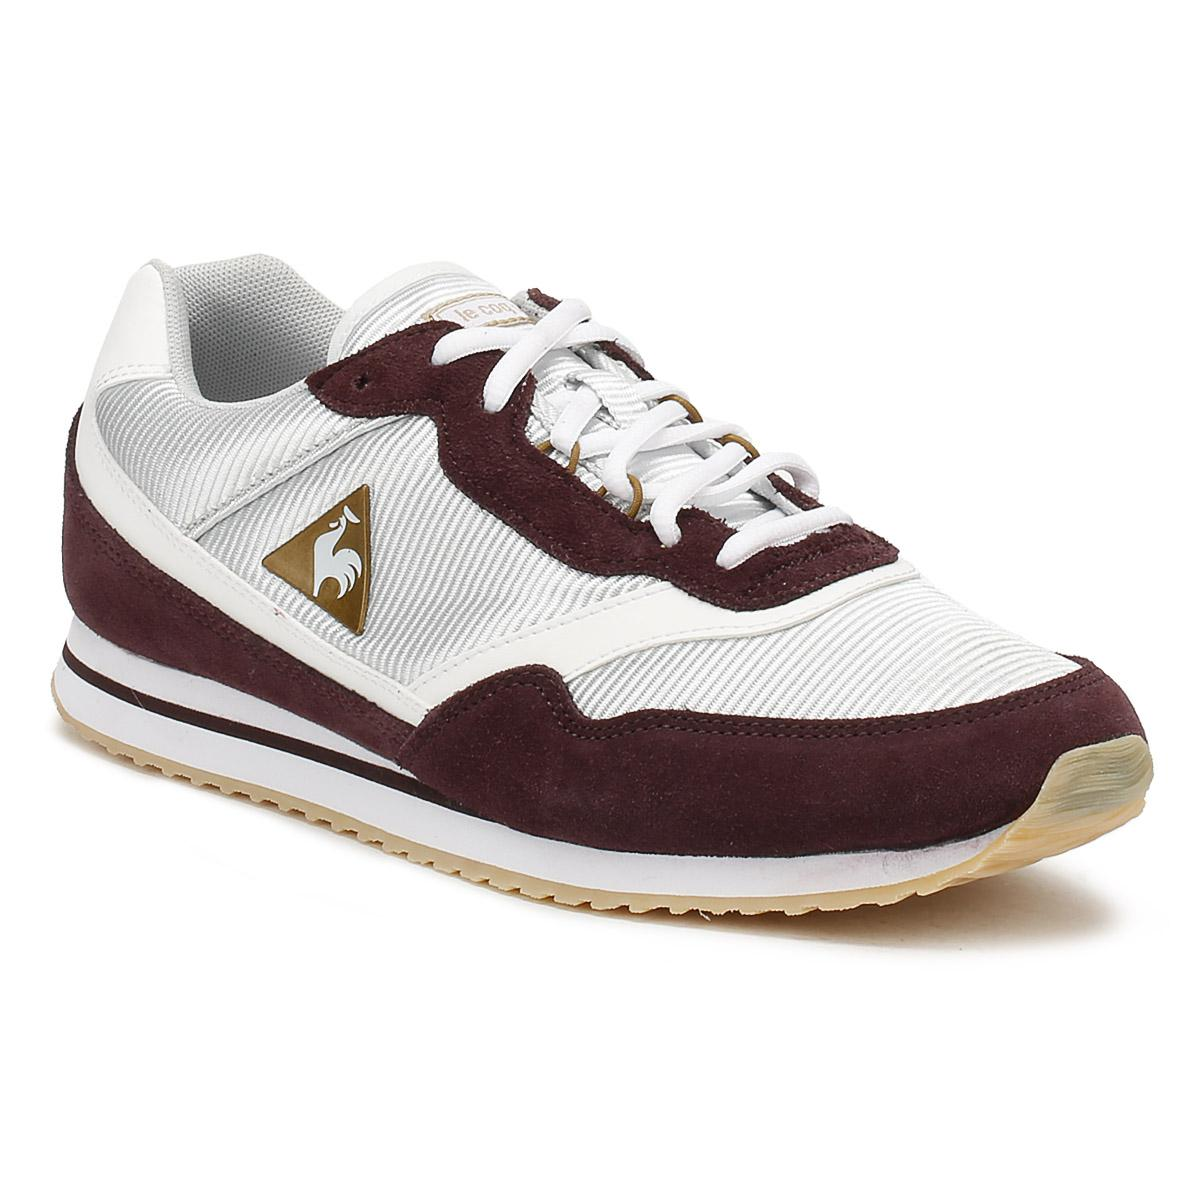 efe028dab3a2 Lyst - Le Coq Sportif Womens Fudge  Old Brass Louise Suede Trainers ...